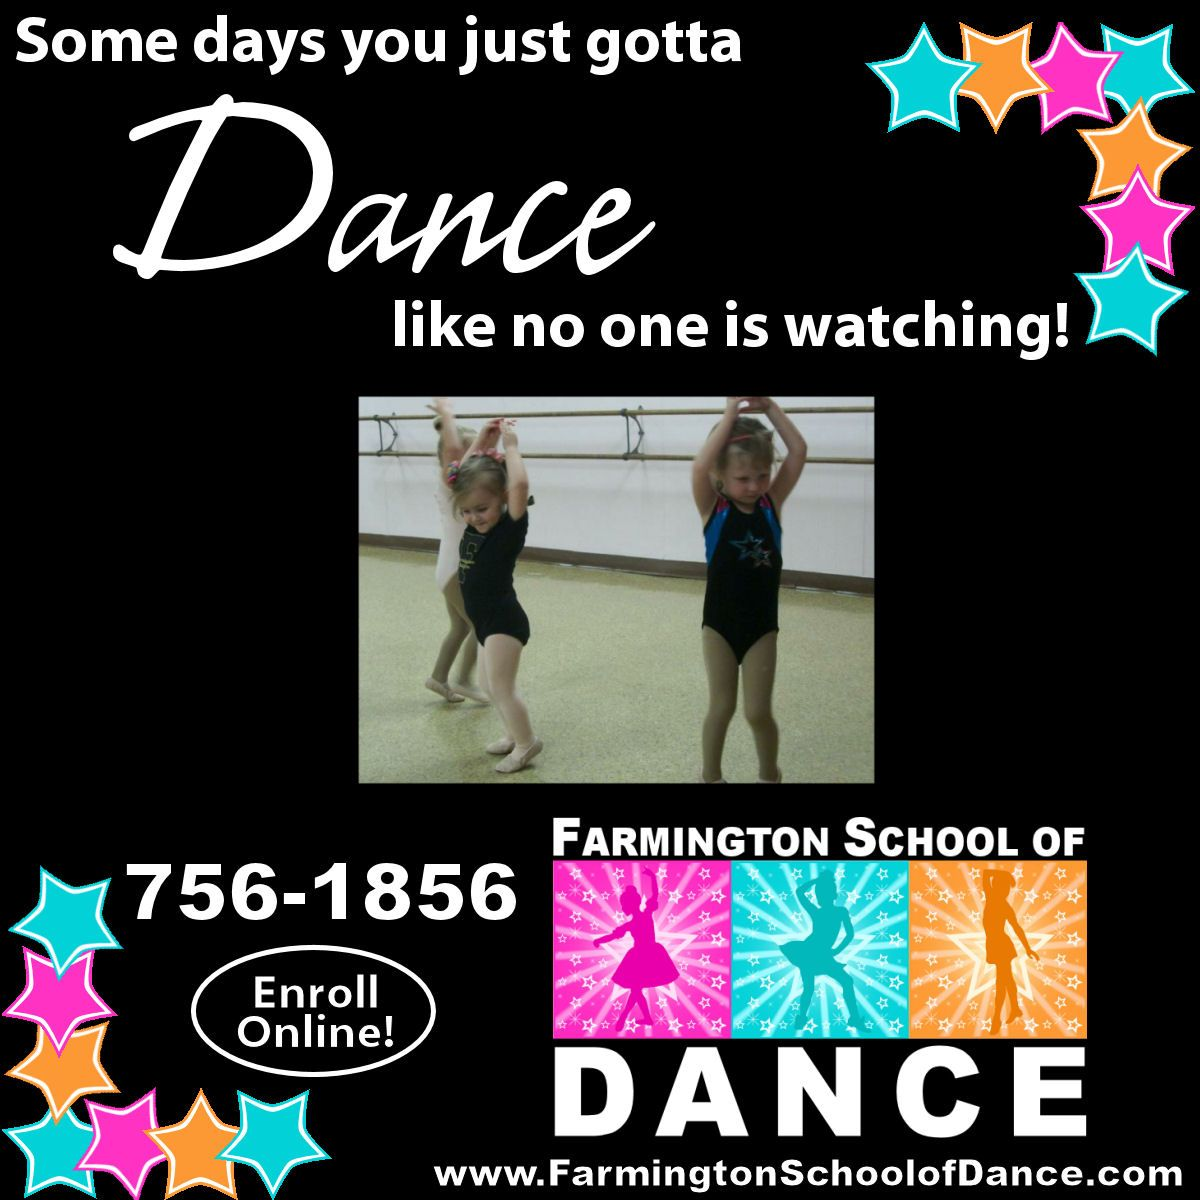 Fsdance Pin It To Win Every Pin Enters You In Our Drawing On September 30th For A Dance Bag And Fsd T Shirt See O Dance School Dance Like No One Is